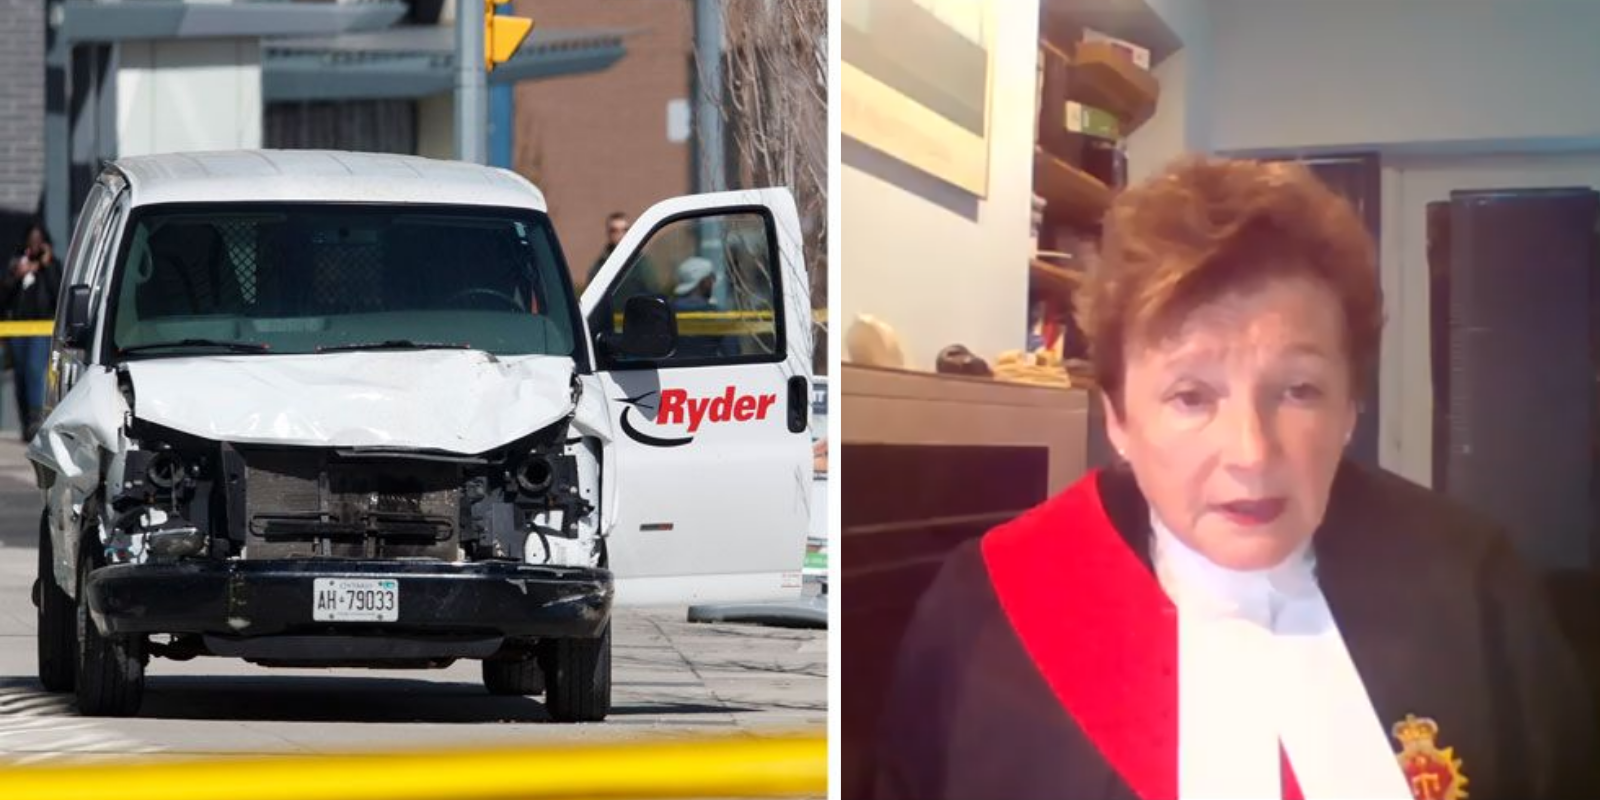 Toronto van attacker found guilty on all counts